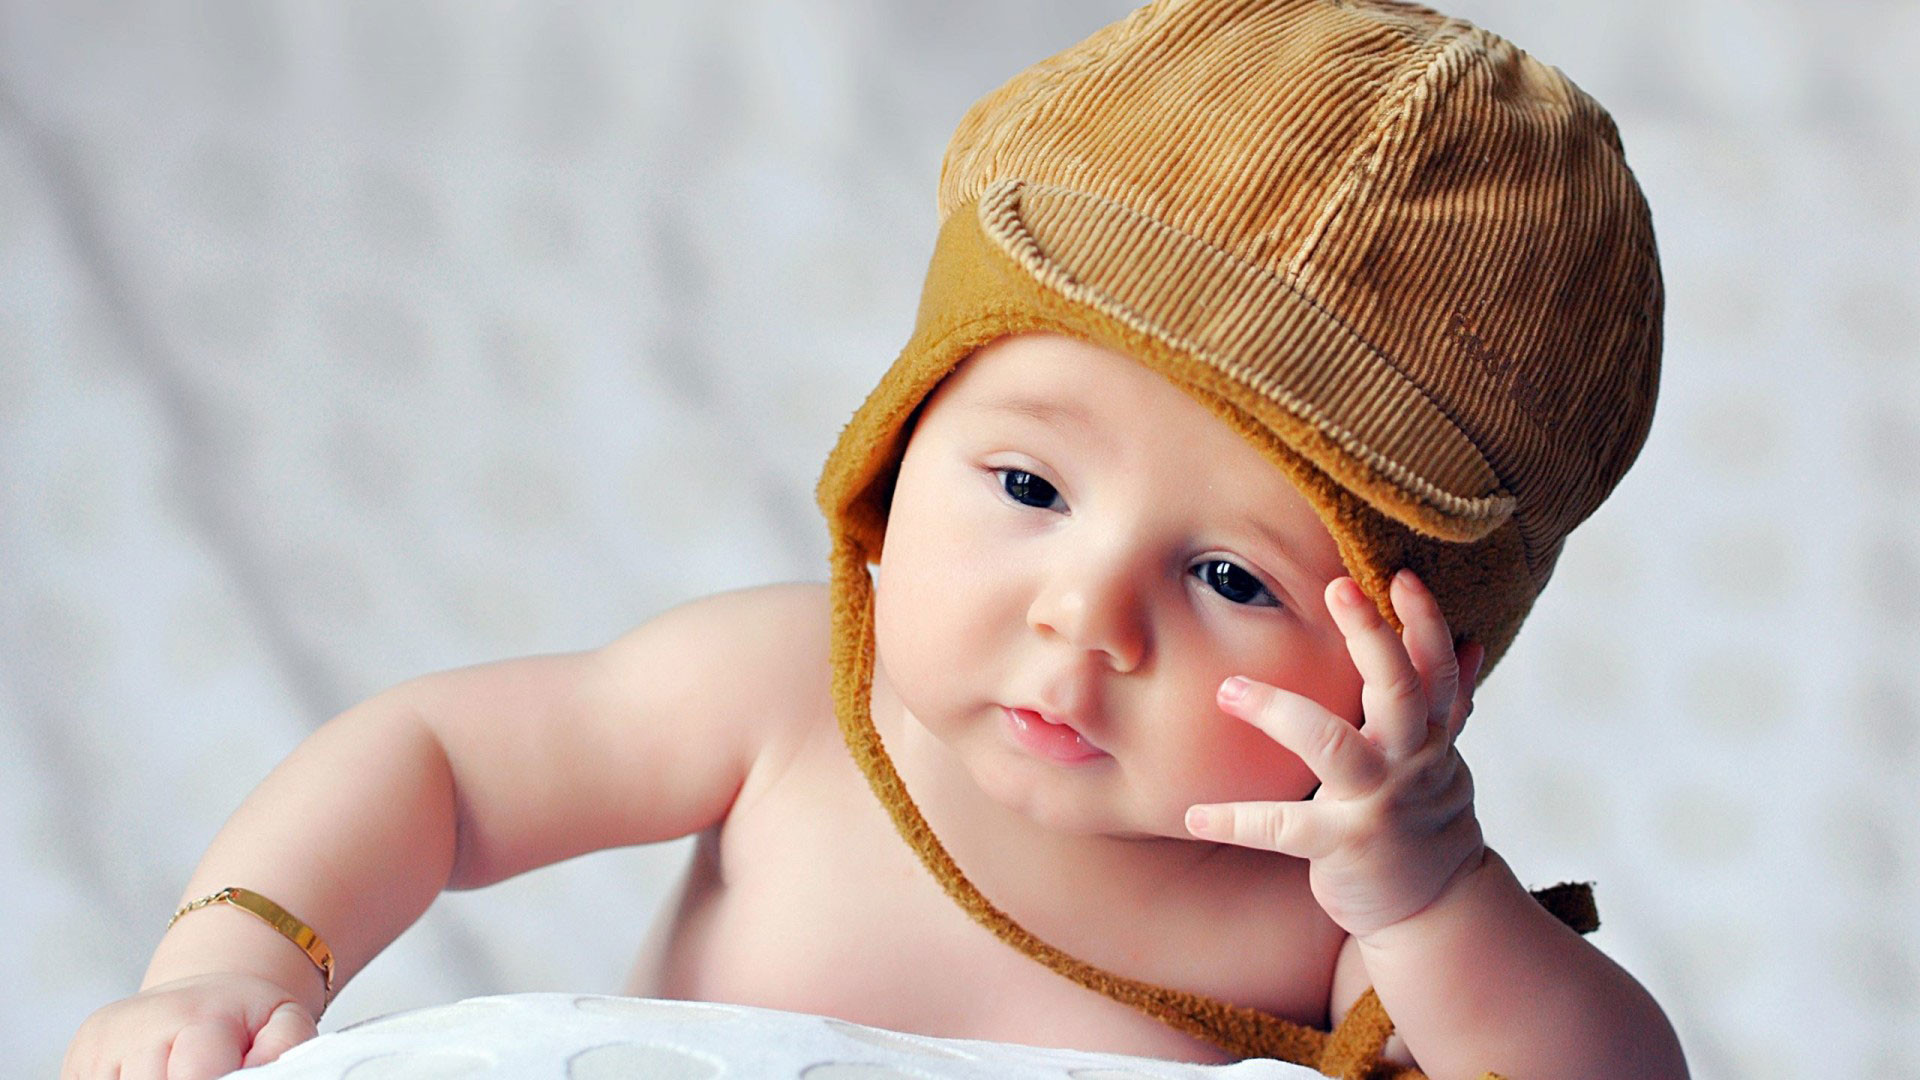 1920x1080 hd pics photos baby funny emotions desktop background wallpaper